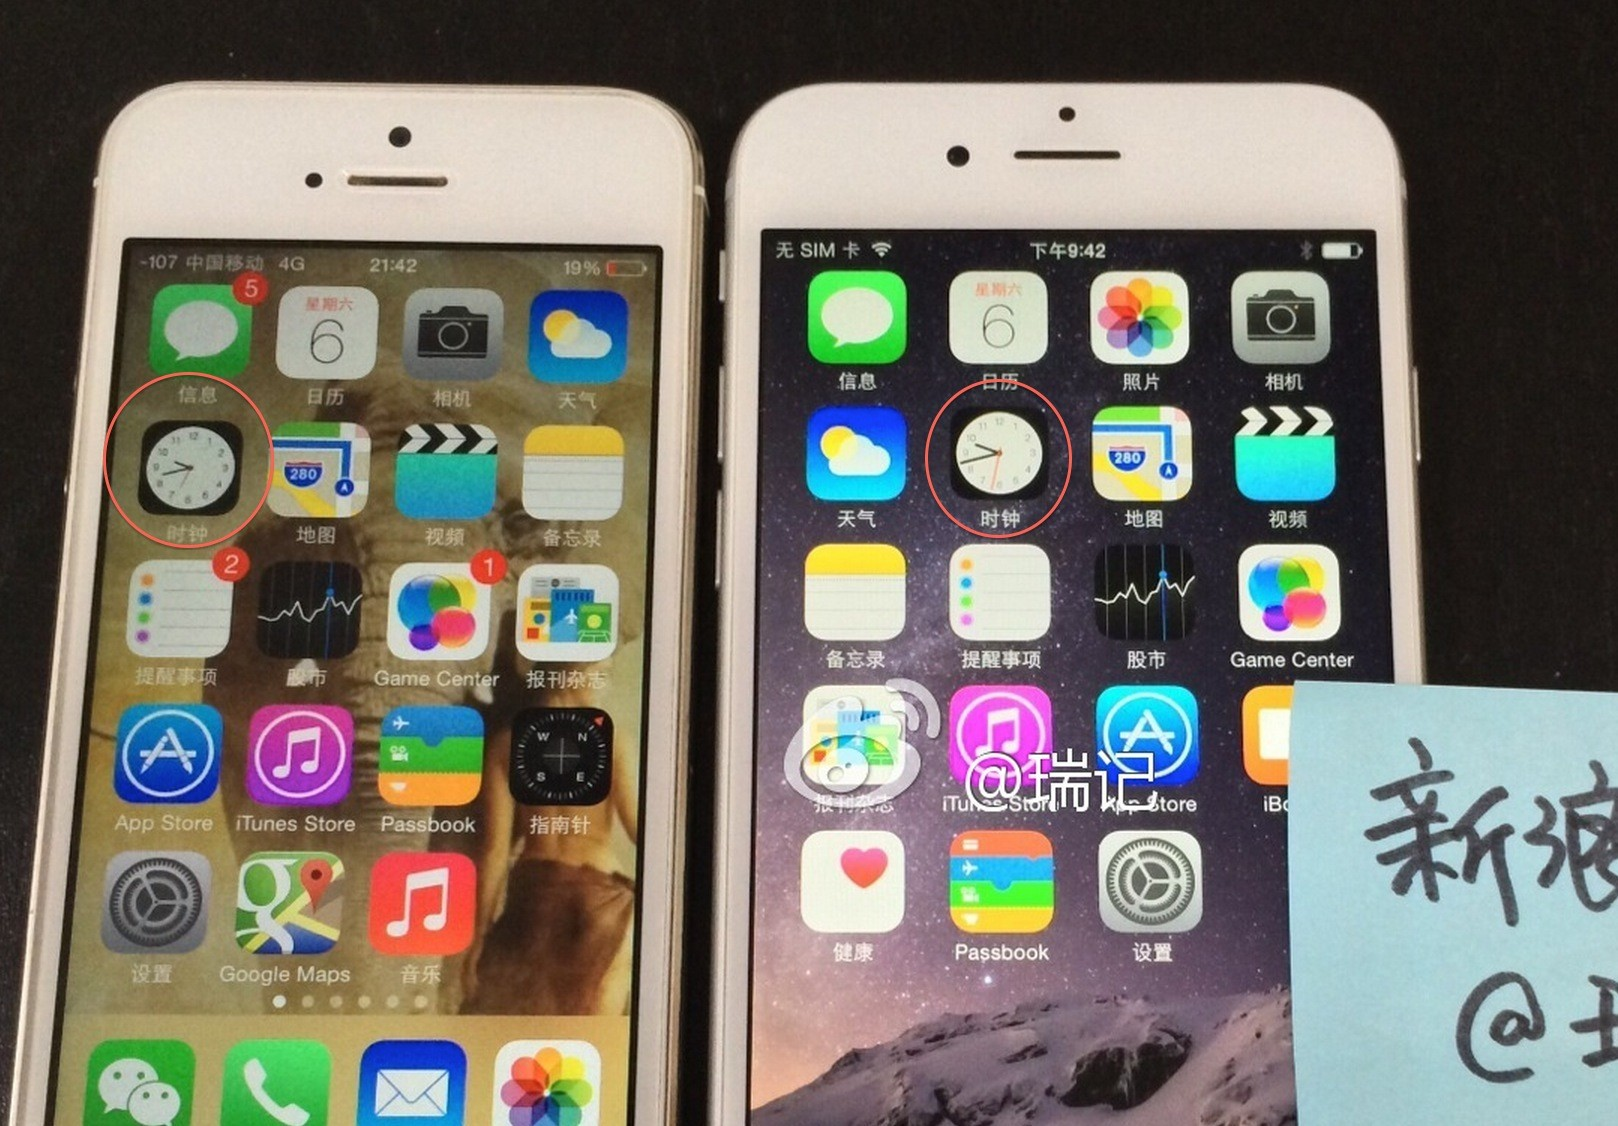 How to Spot a Supposedly Fake iPhone 6 Running iOS 8